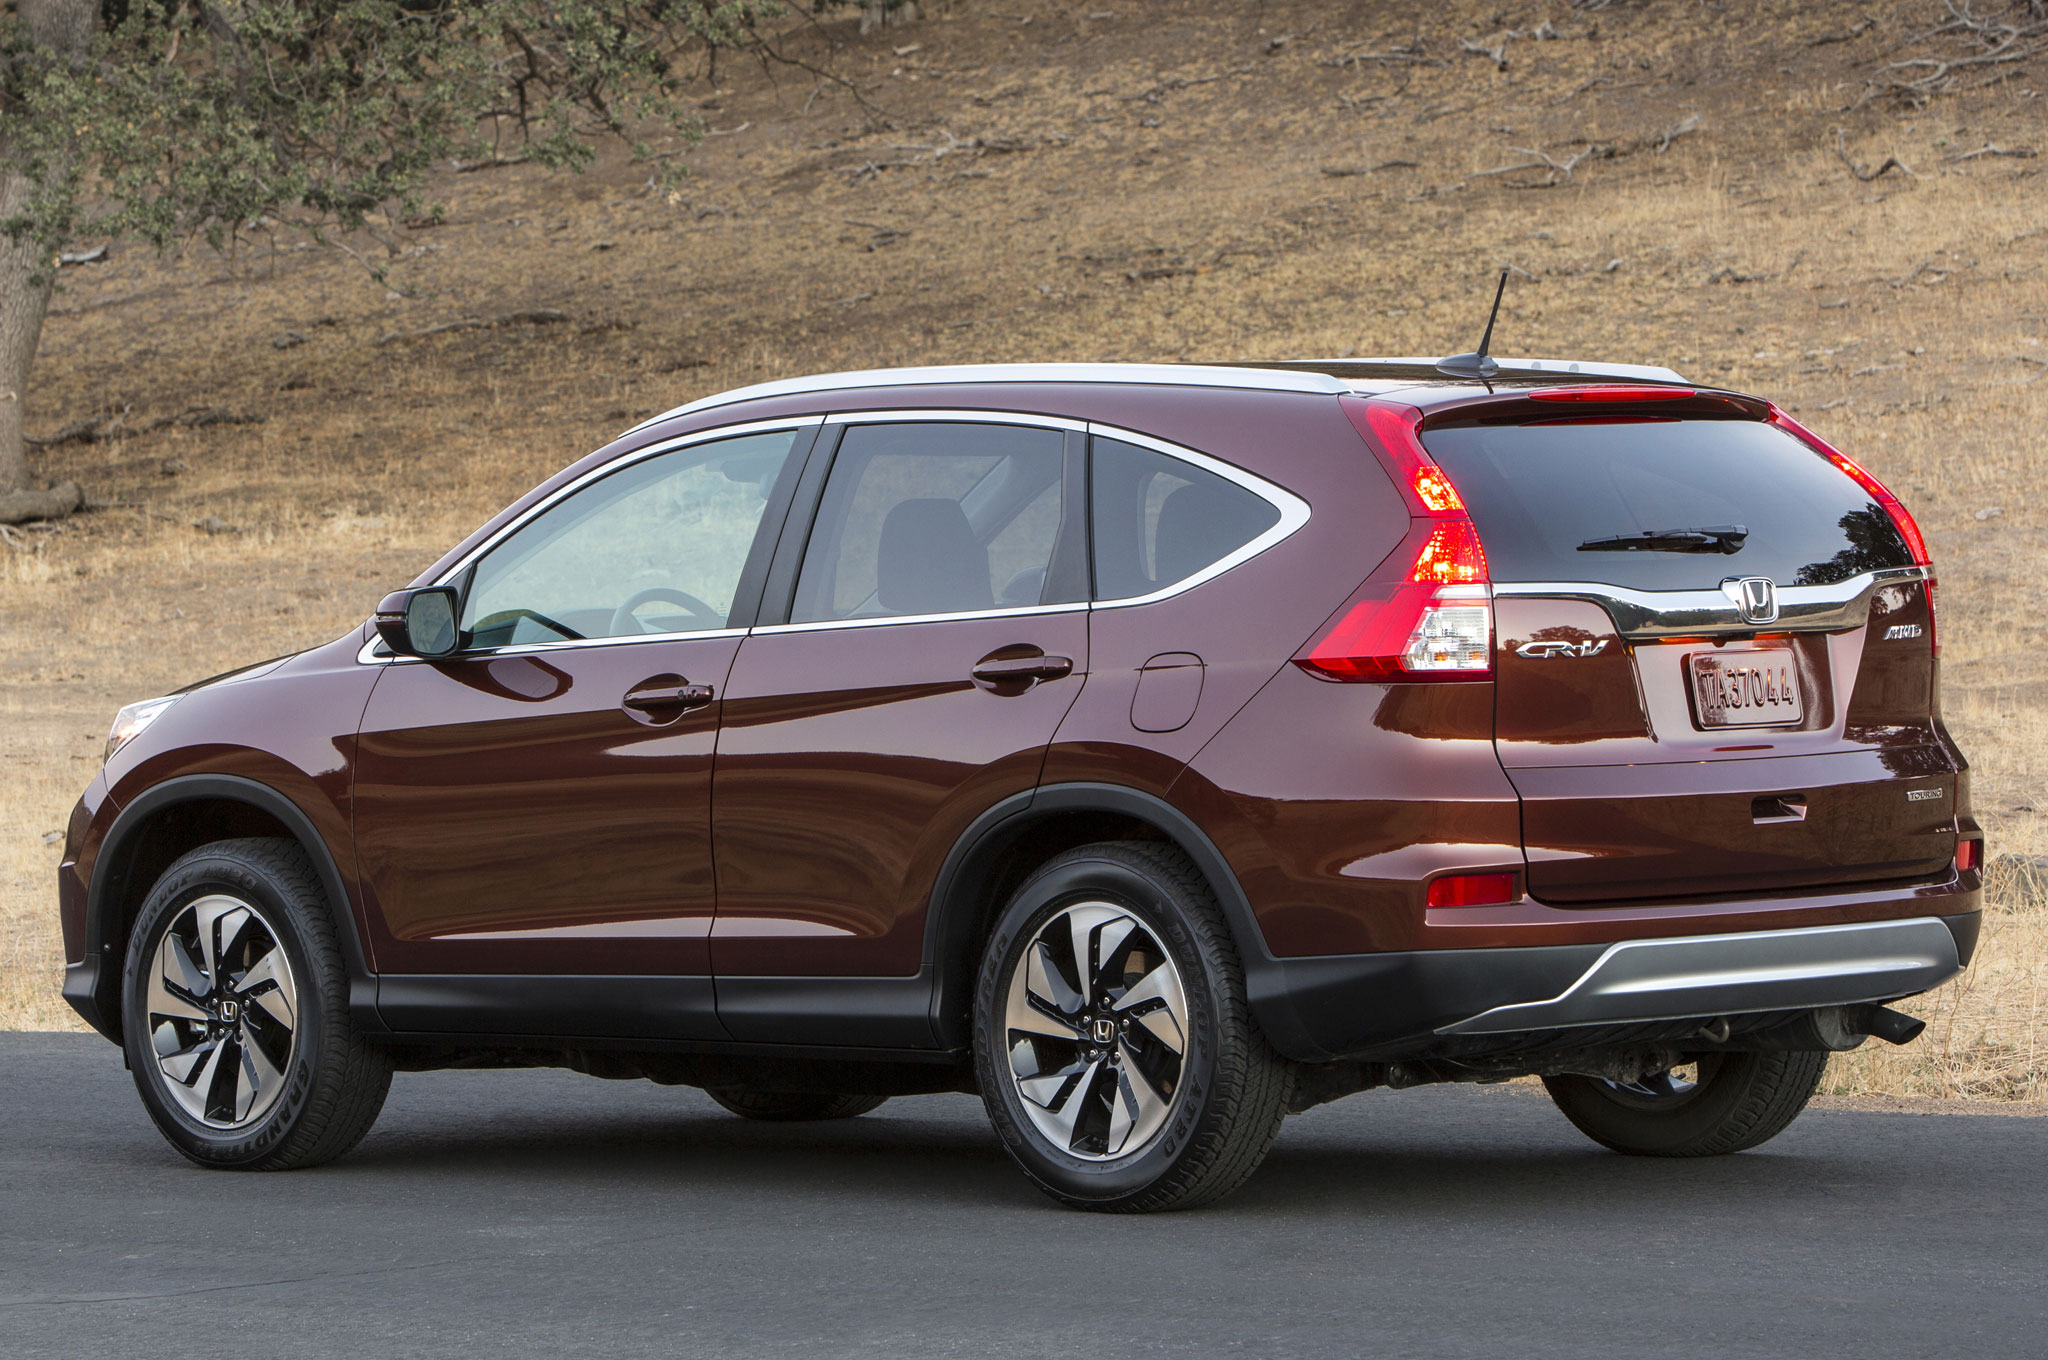 2015 honda cr v wins motor trend suv of the year. Black Bedroom Furniture Sets. Home Design Ideas